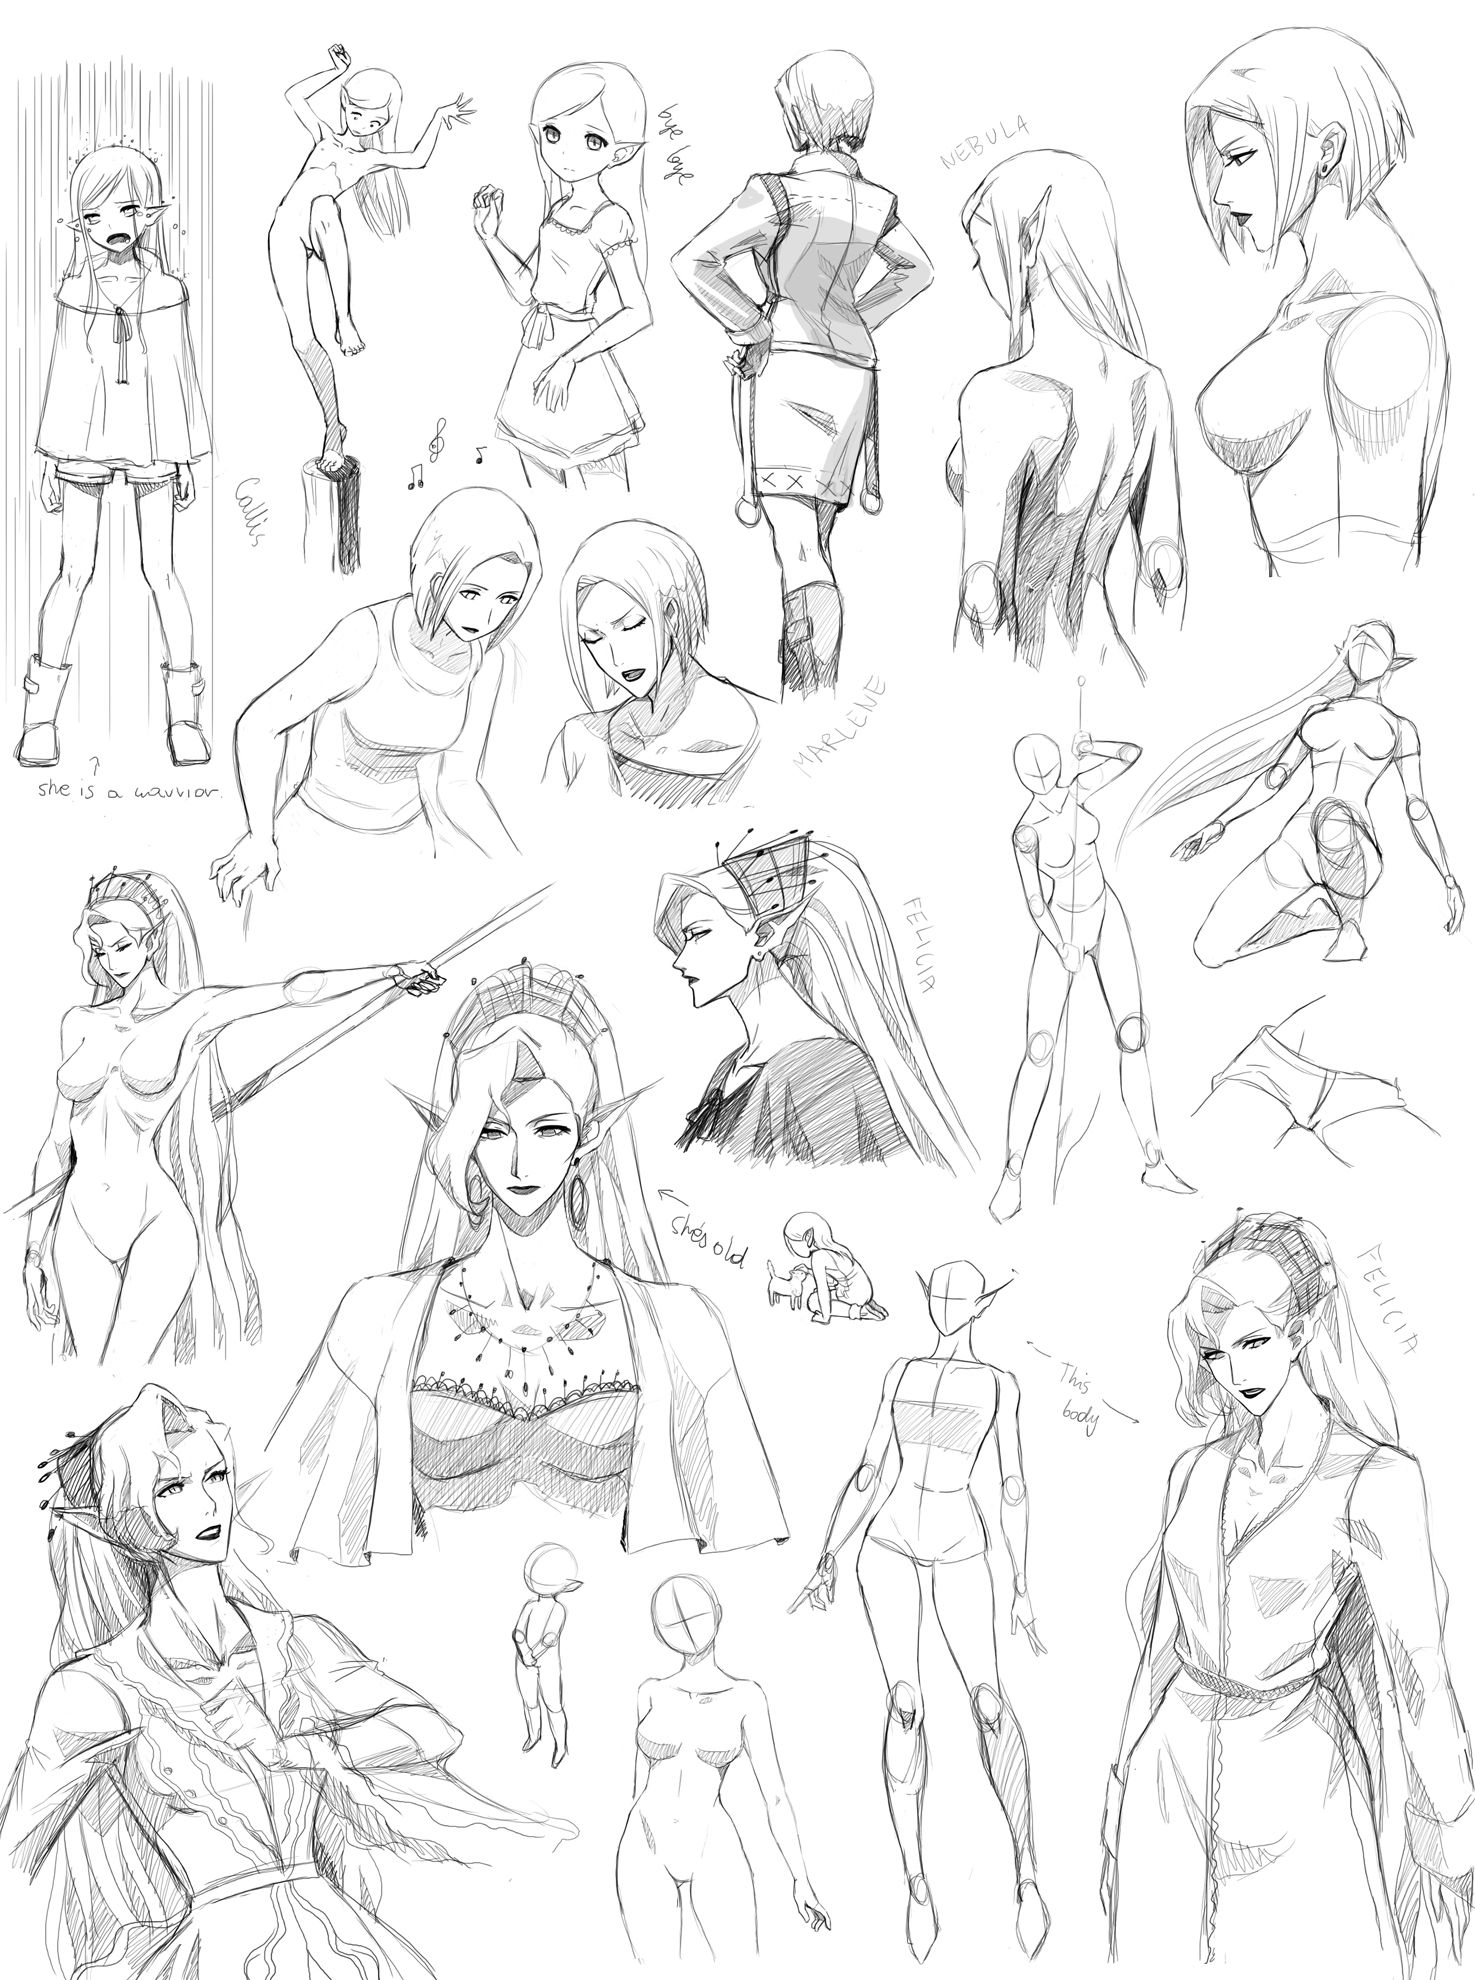 Female anatomy poses 2 targa by precia t deviantart com on deviantart